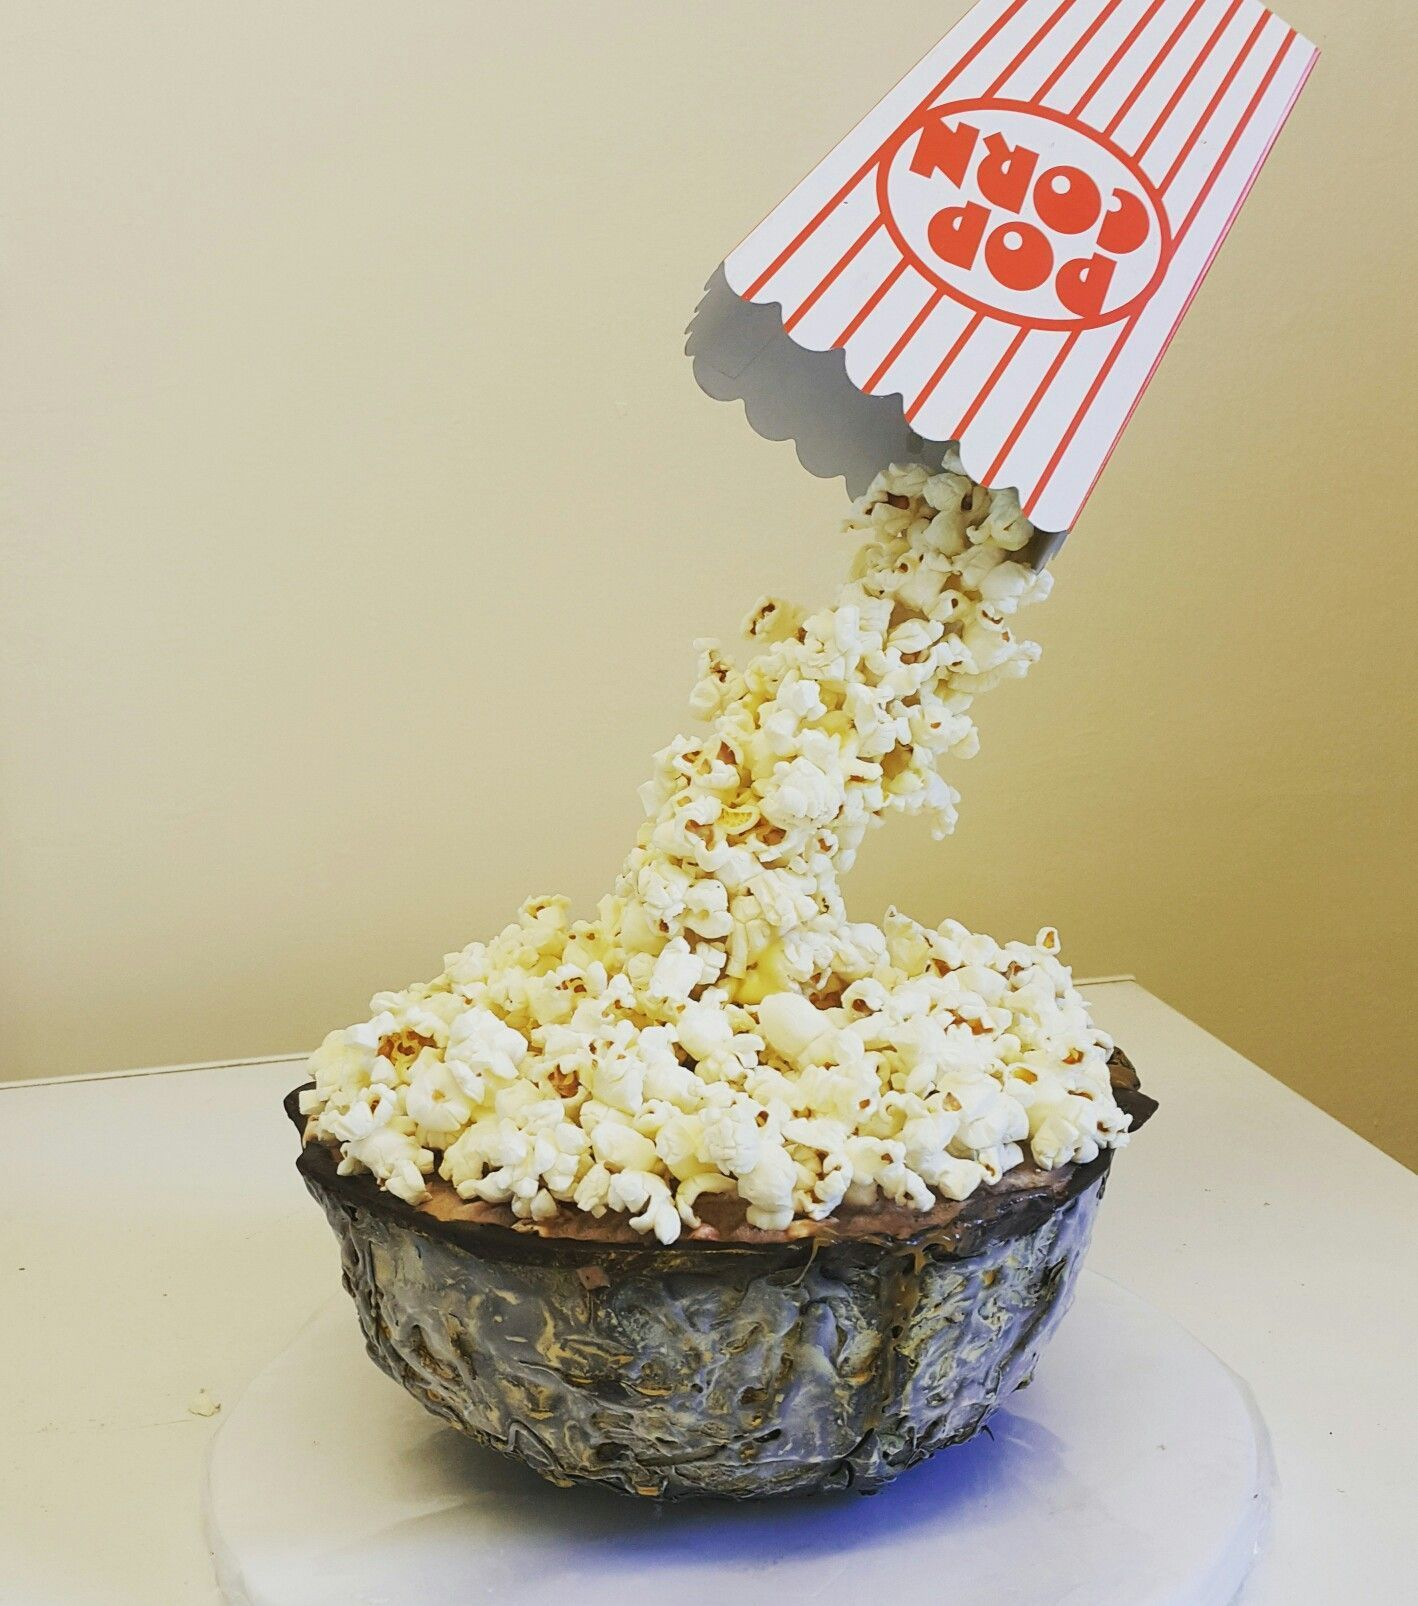 Popcorn bowl anti-gravity cake. The 'bowl' is layered ice cream, covered in a dark chocolate shell. Topped with freshly popped popcorn. #gravitycake Popcorn bowl anti-gravity cake. The 'bowl' is layered ice cream, covered in a dark chocolate shell. Topped with freshly popped popcorn. #gravitycake Popcorn bowl anti-gravity cake. The 'bowl' is layered ice cream, covered in a dark chocolate shell. Topped with freshly popped popcorn. #gravitycake Popcorn bowl anti-gravity cake. The 'bowl' is layered #gravitycake